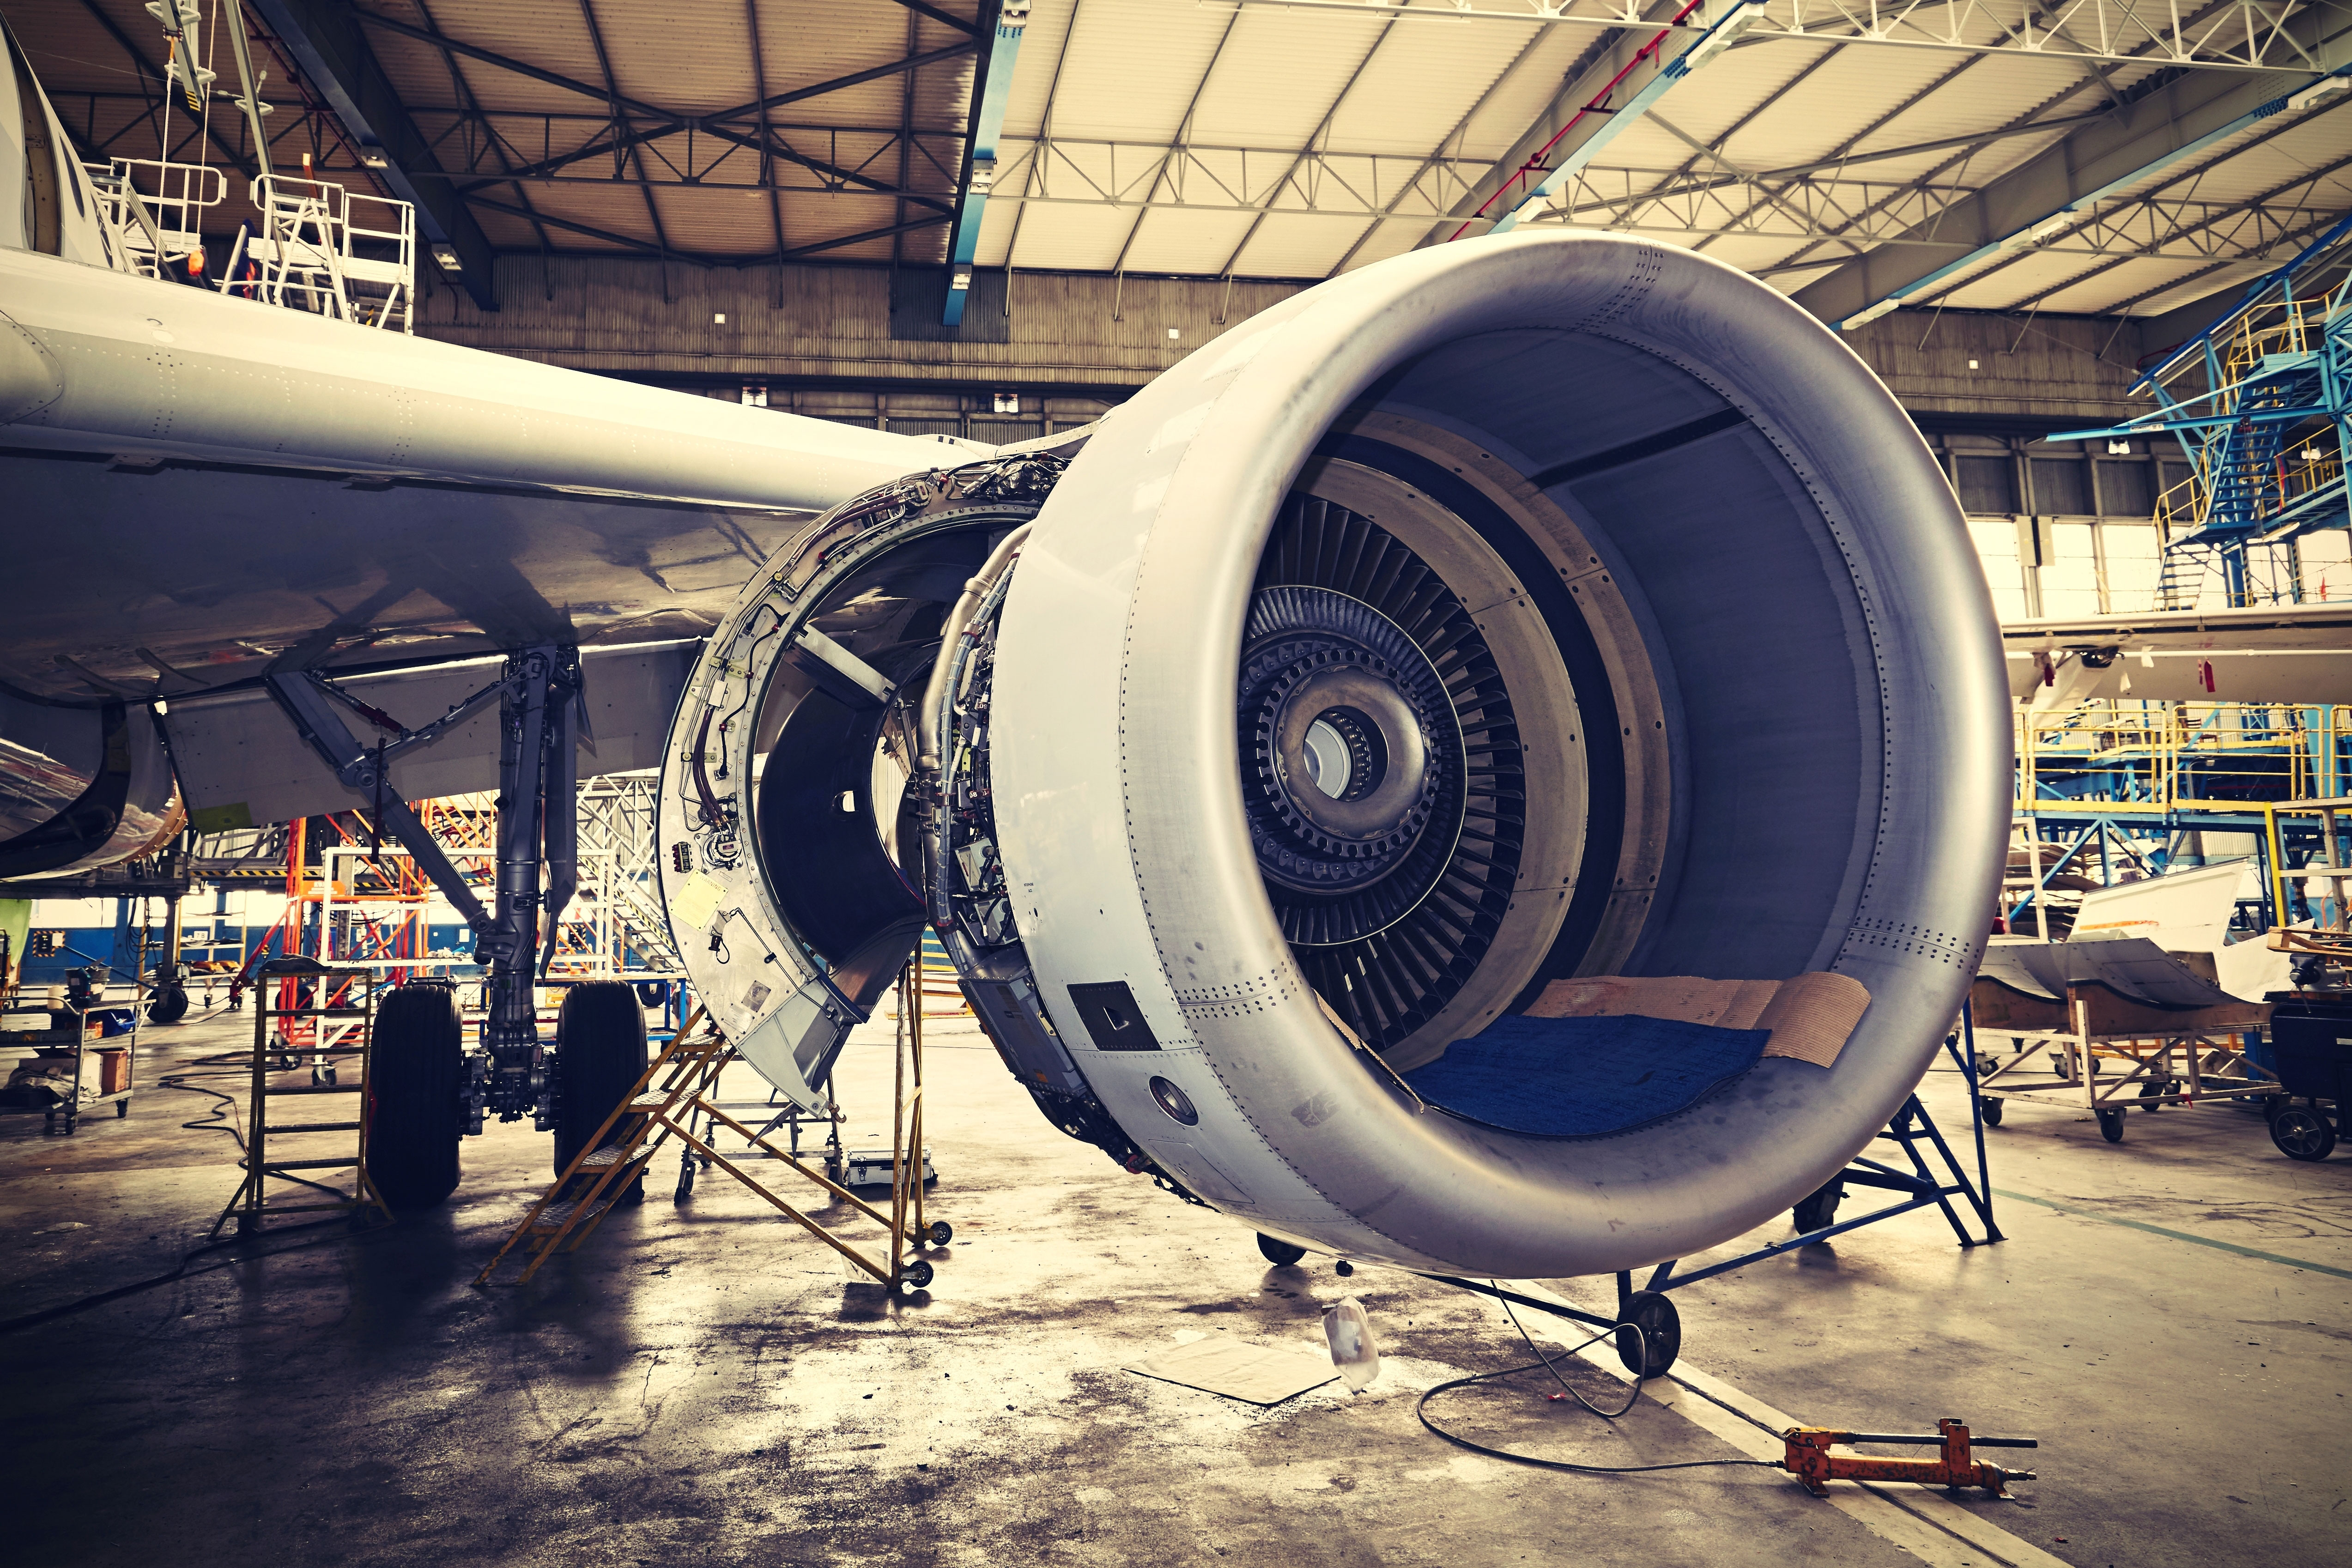 Aerospace & Defense parts | Airplane engine undergoing heavy maintenance